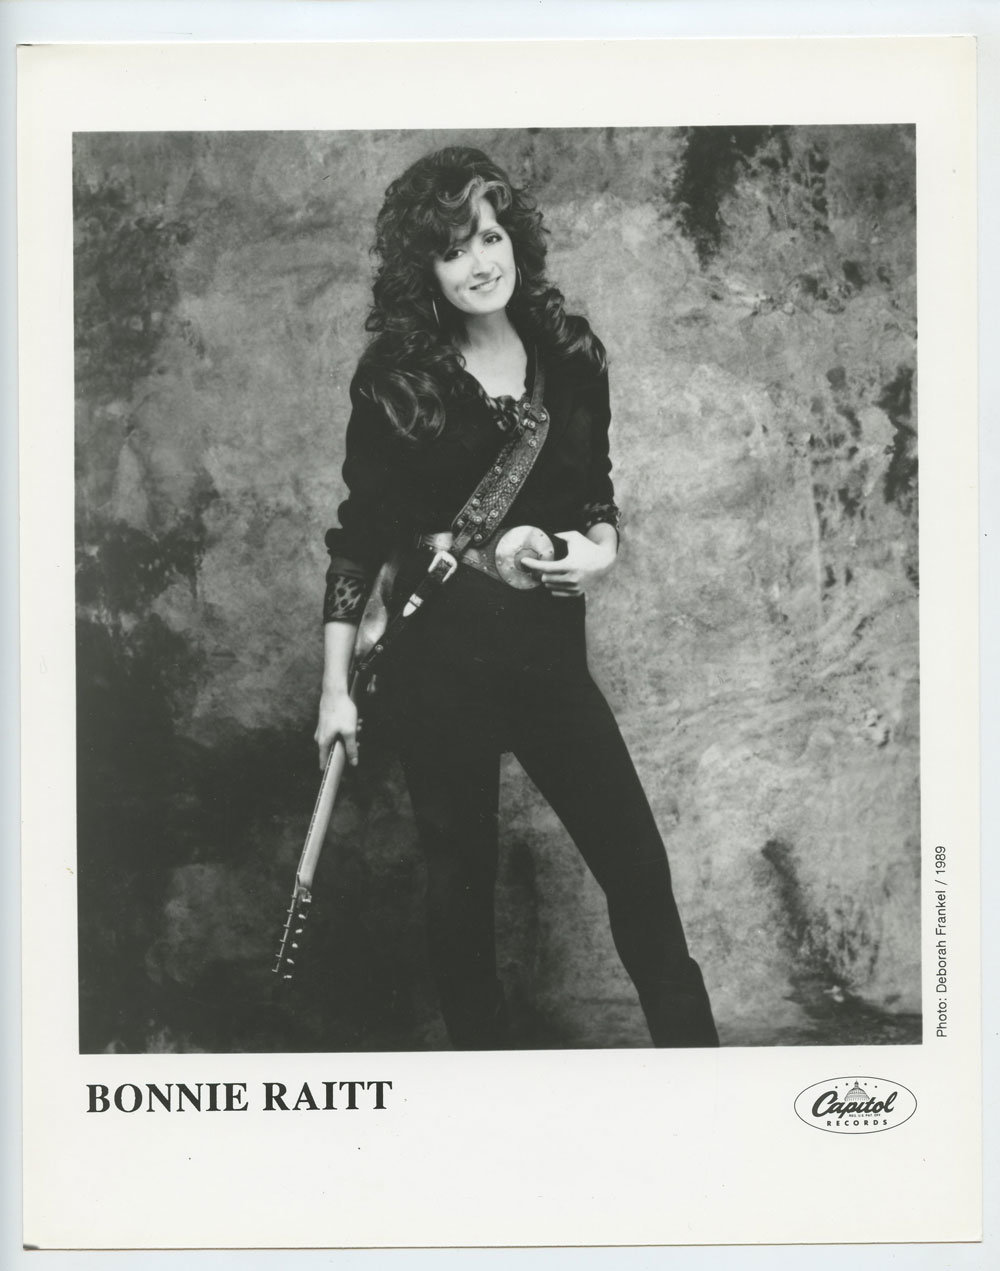 Bonnie Raitt Photo 1989 Publicity Promo Capital Records